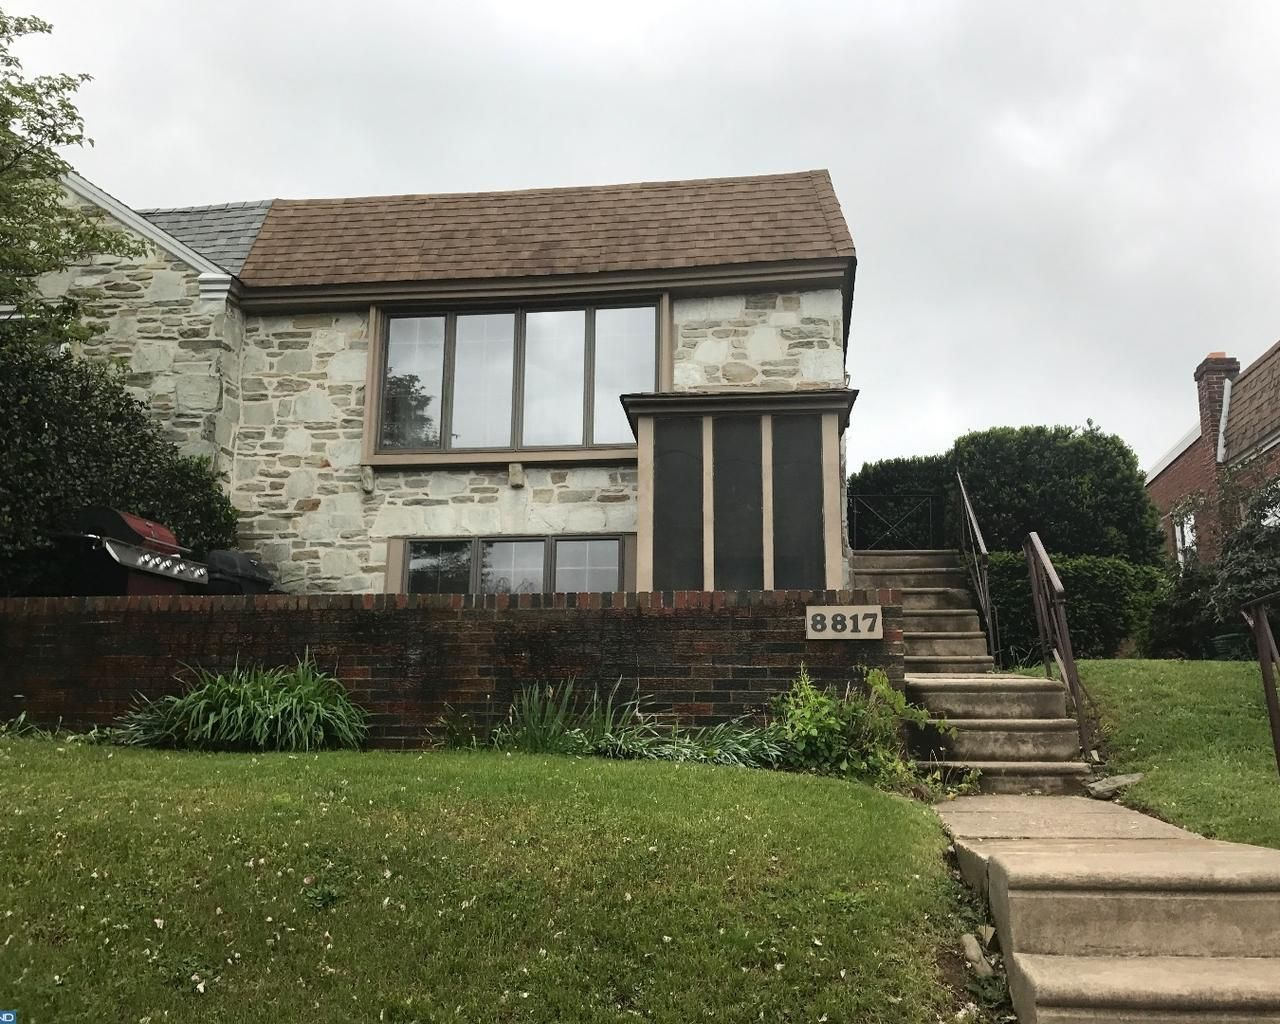 Single Family Property For Sale with 4 Beds & 3 Baths in